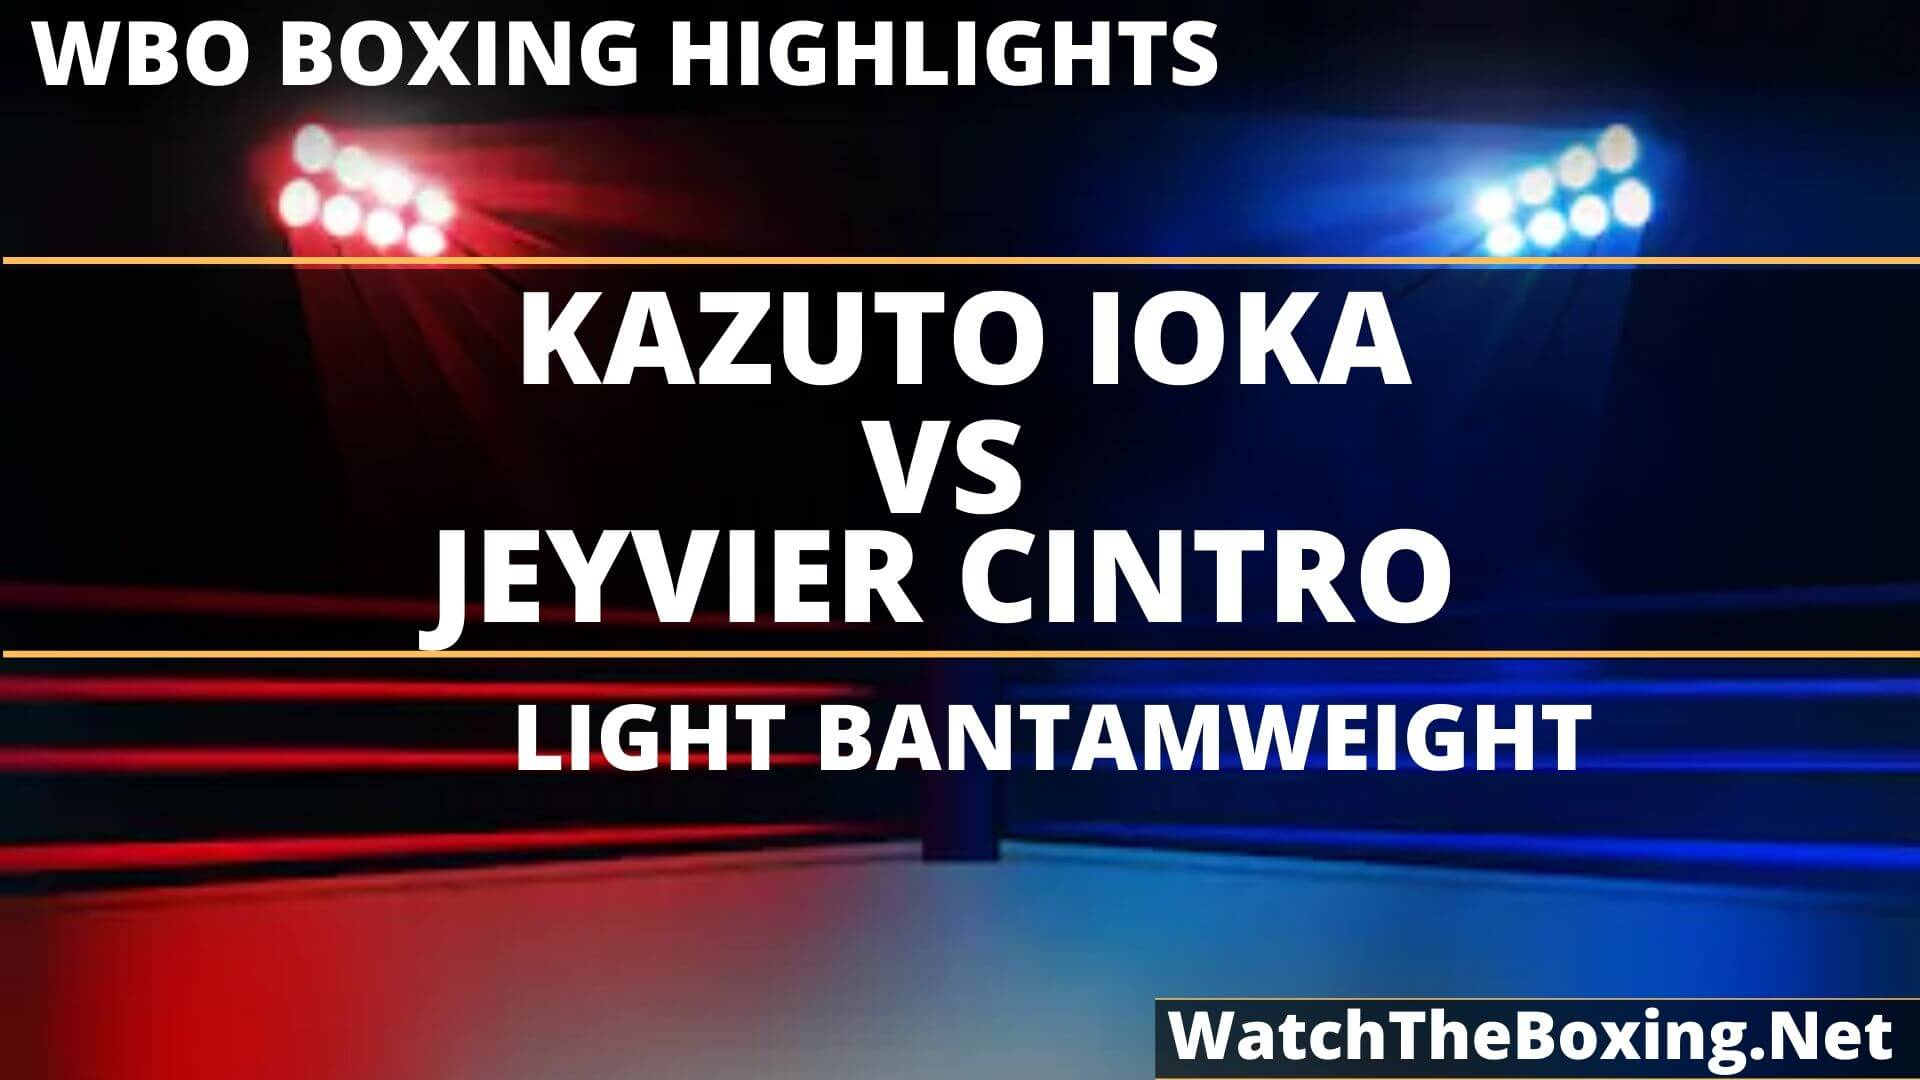 Kazuto Loka Vs Jeyvier Cintro Highlights 2019